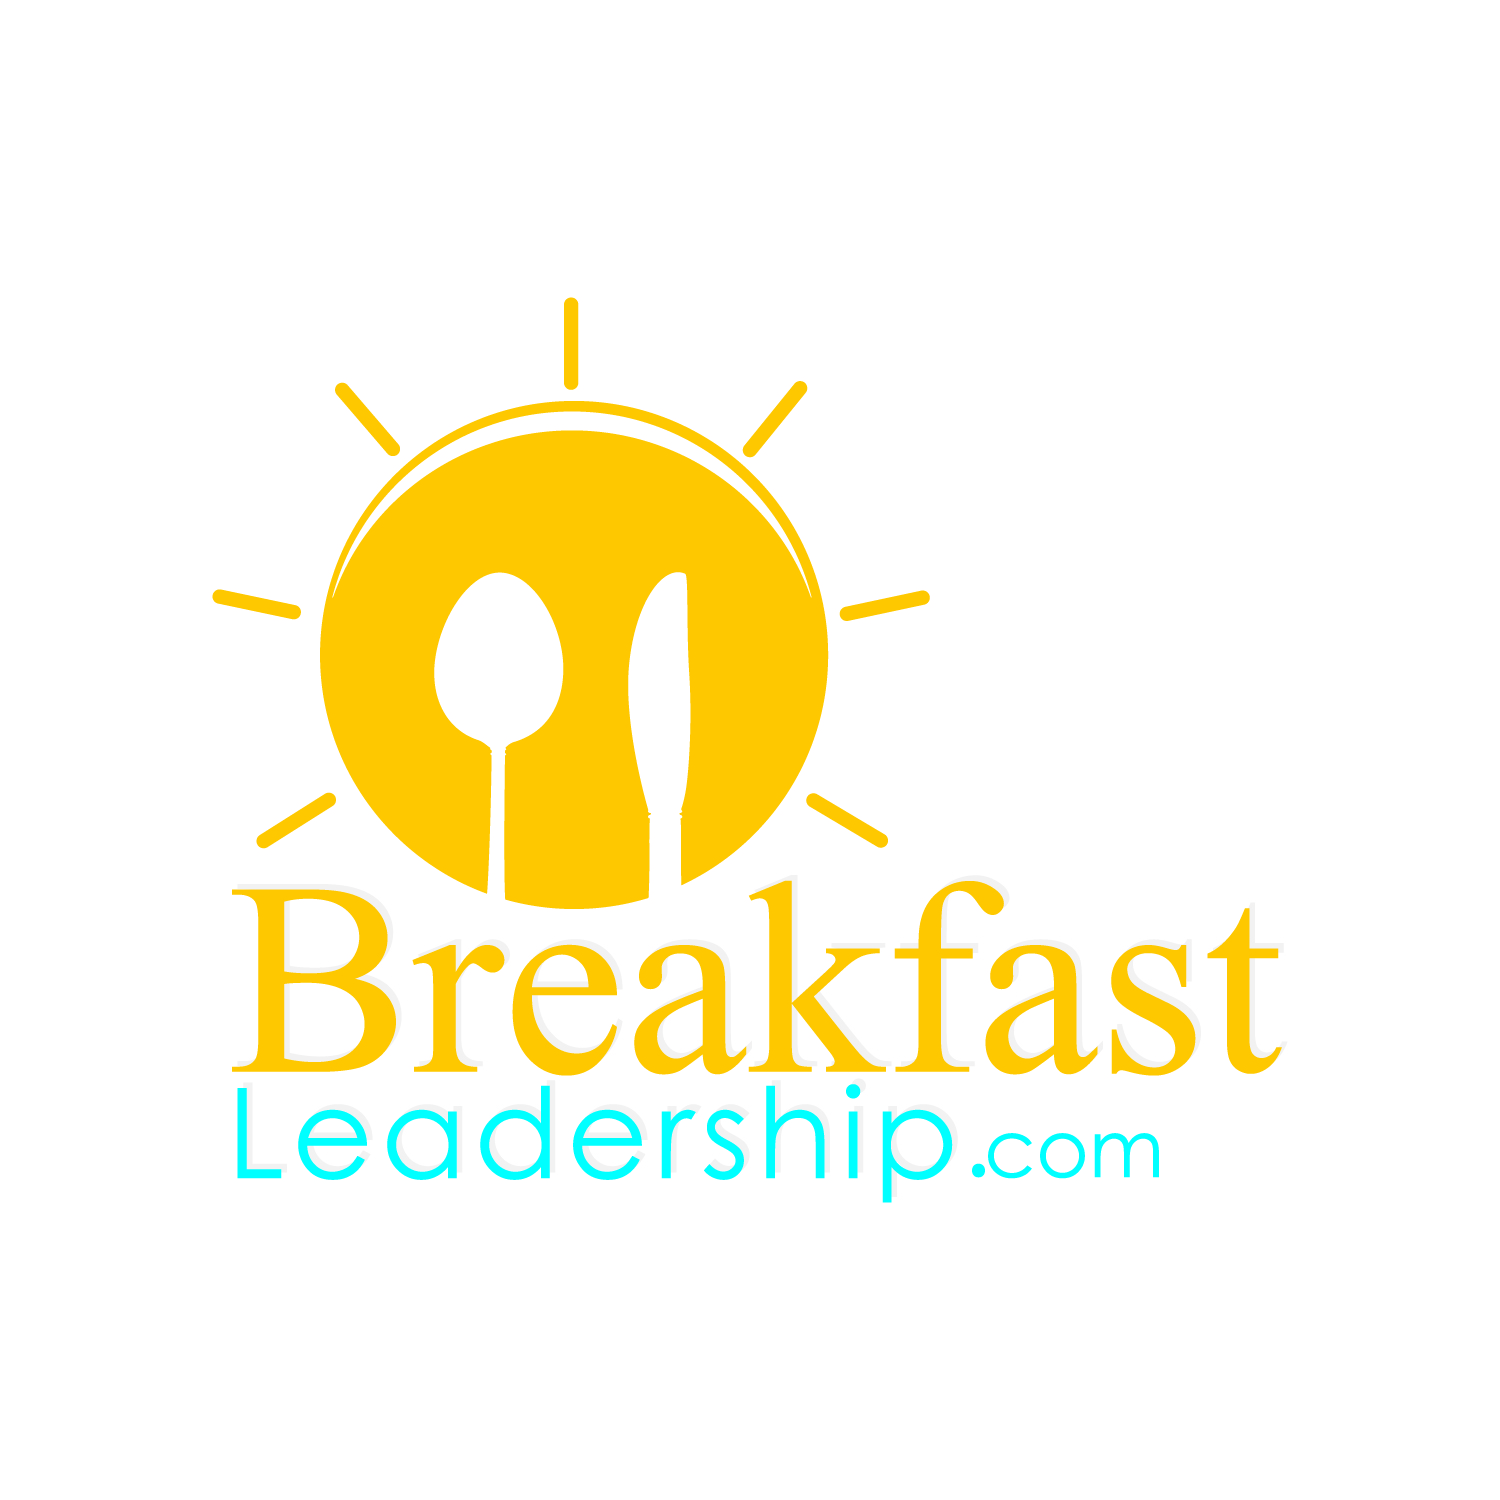 BreakfastLeadership-01.jpg